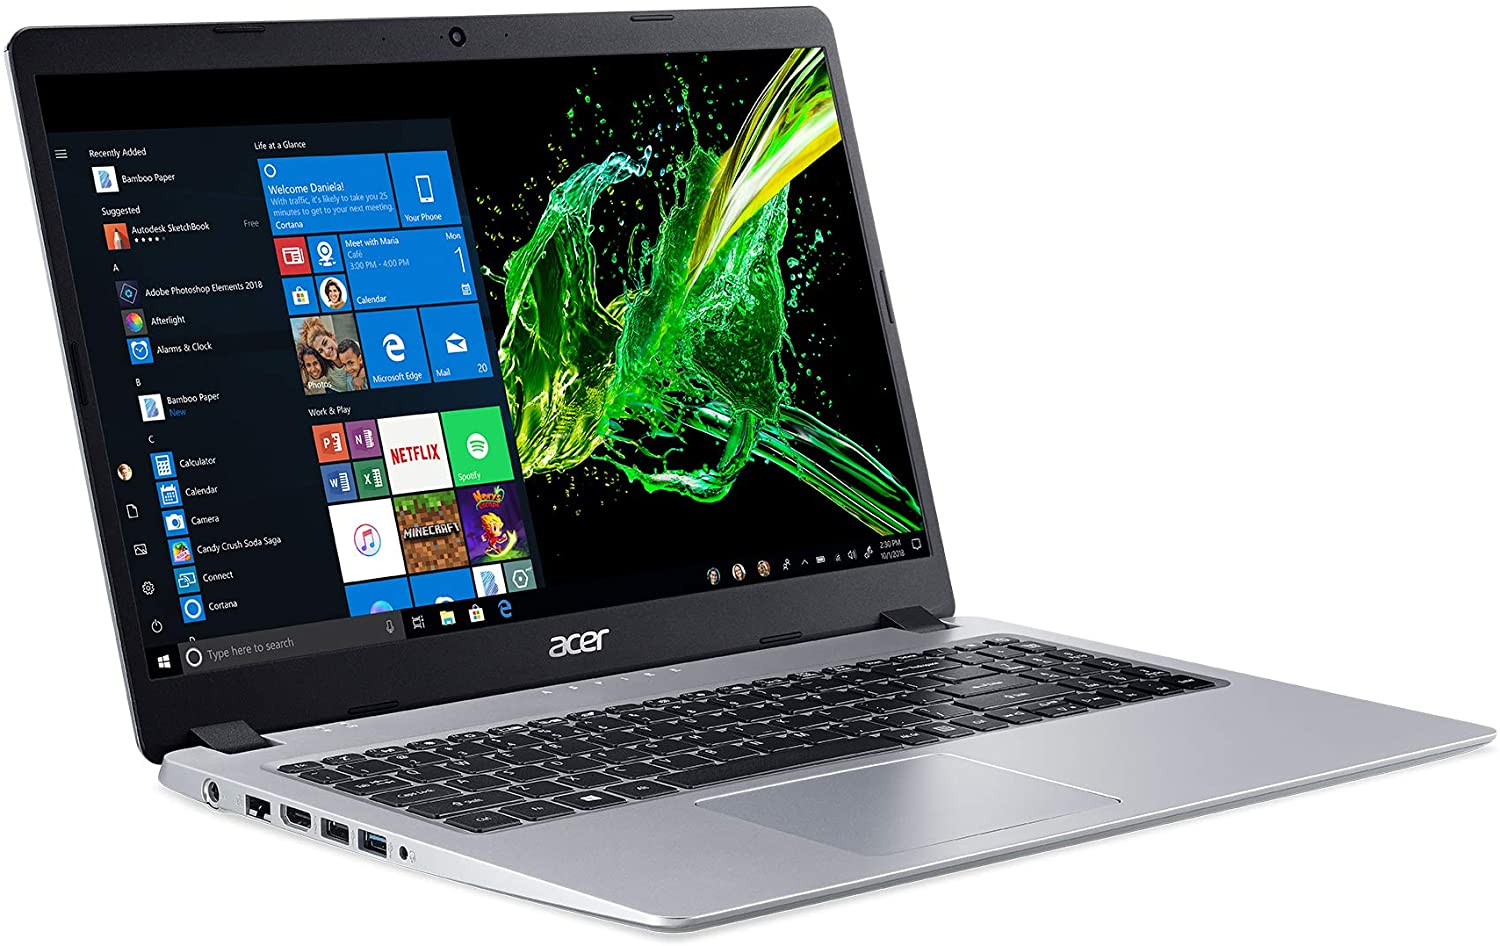 Best Laptop for Downloading Photos